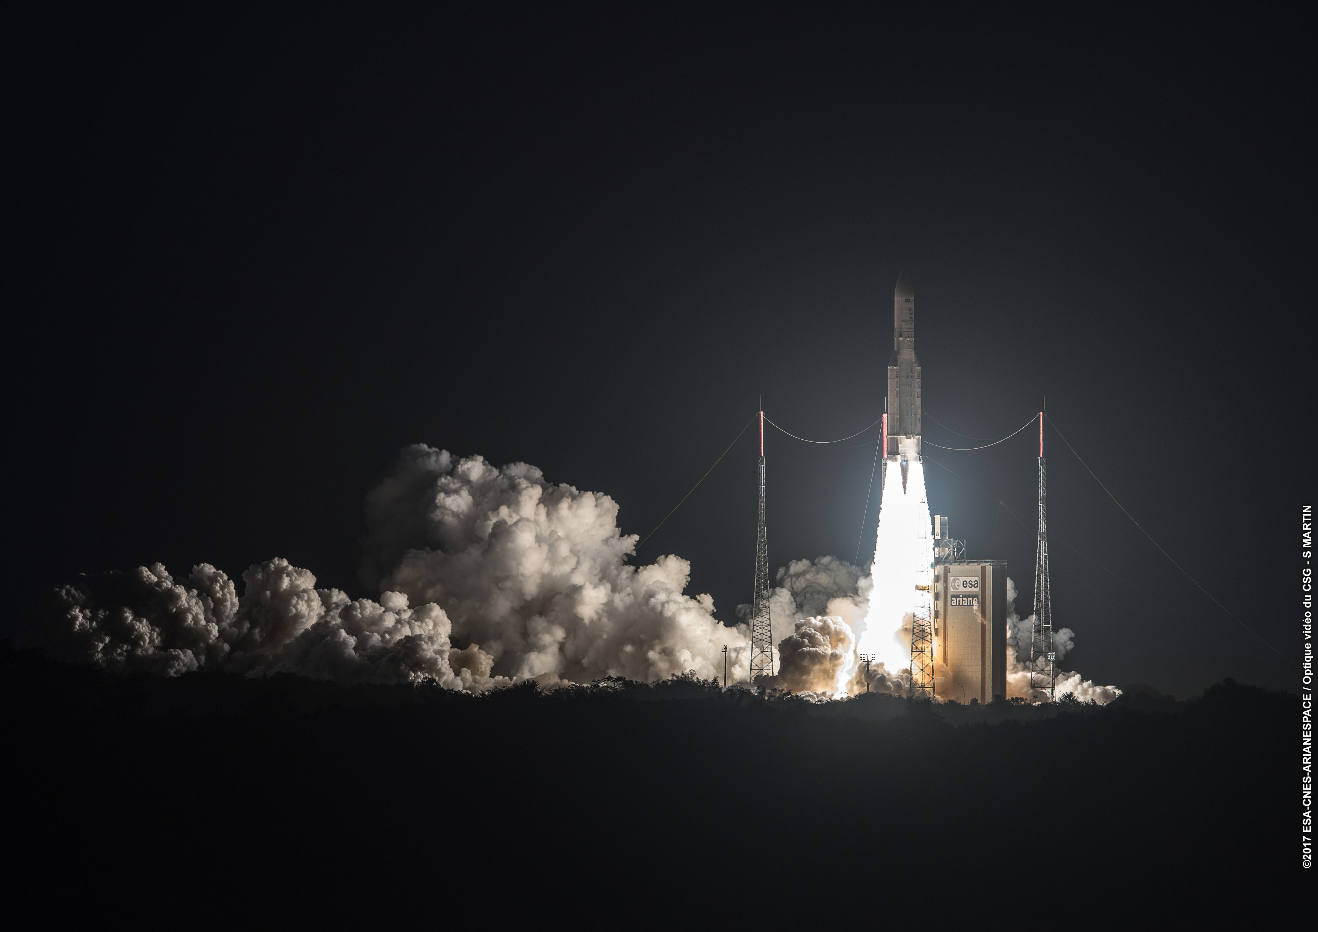 Thales Alenia Space takes 3D printed parts into orbit